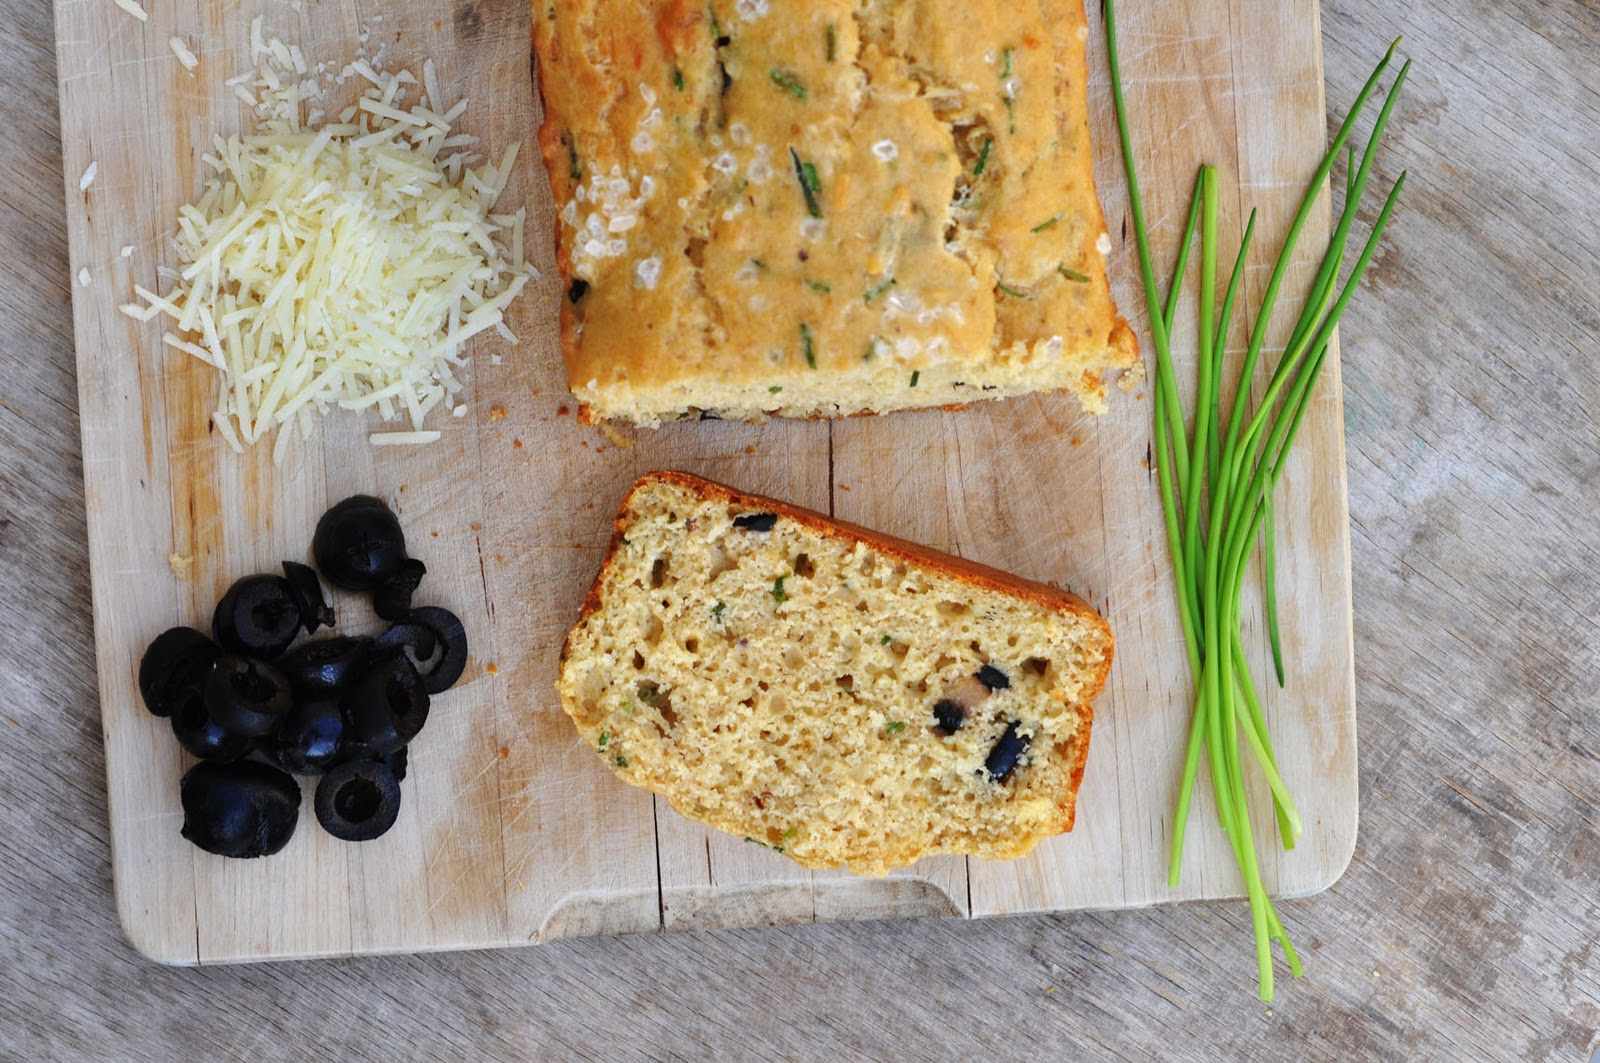 Anja's Food 4 Thought: Olive Cheese Bread